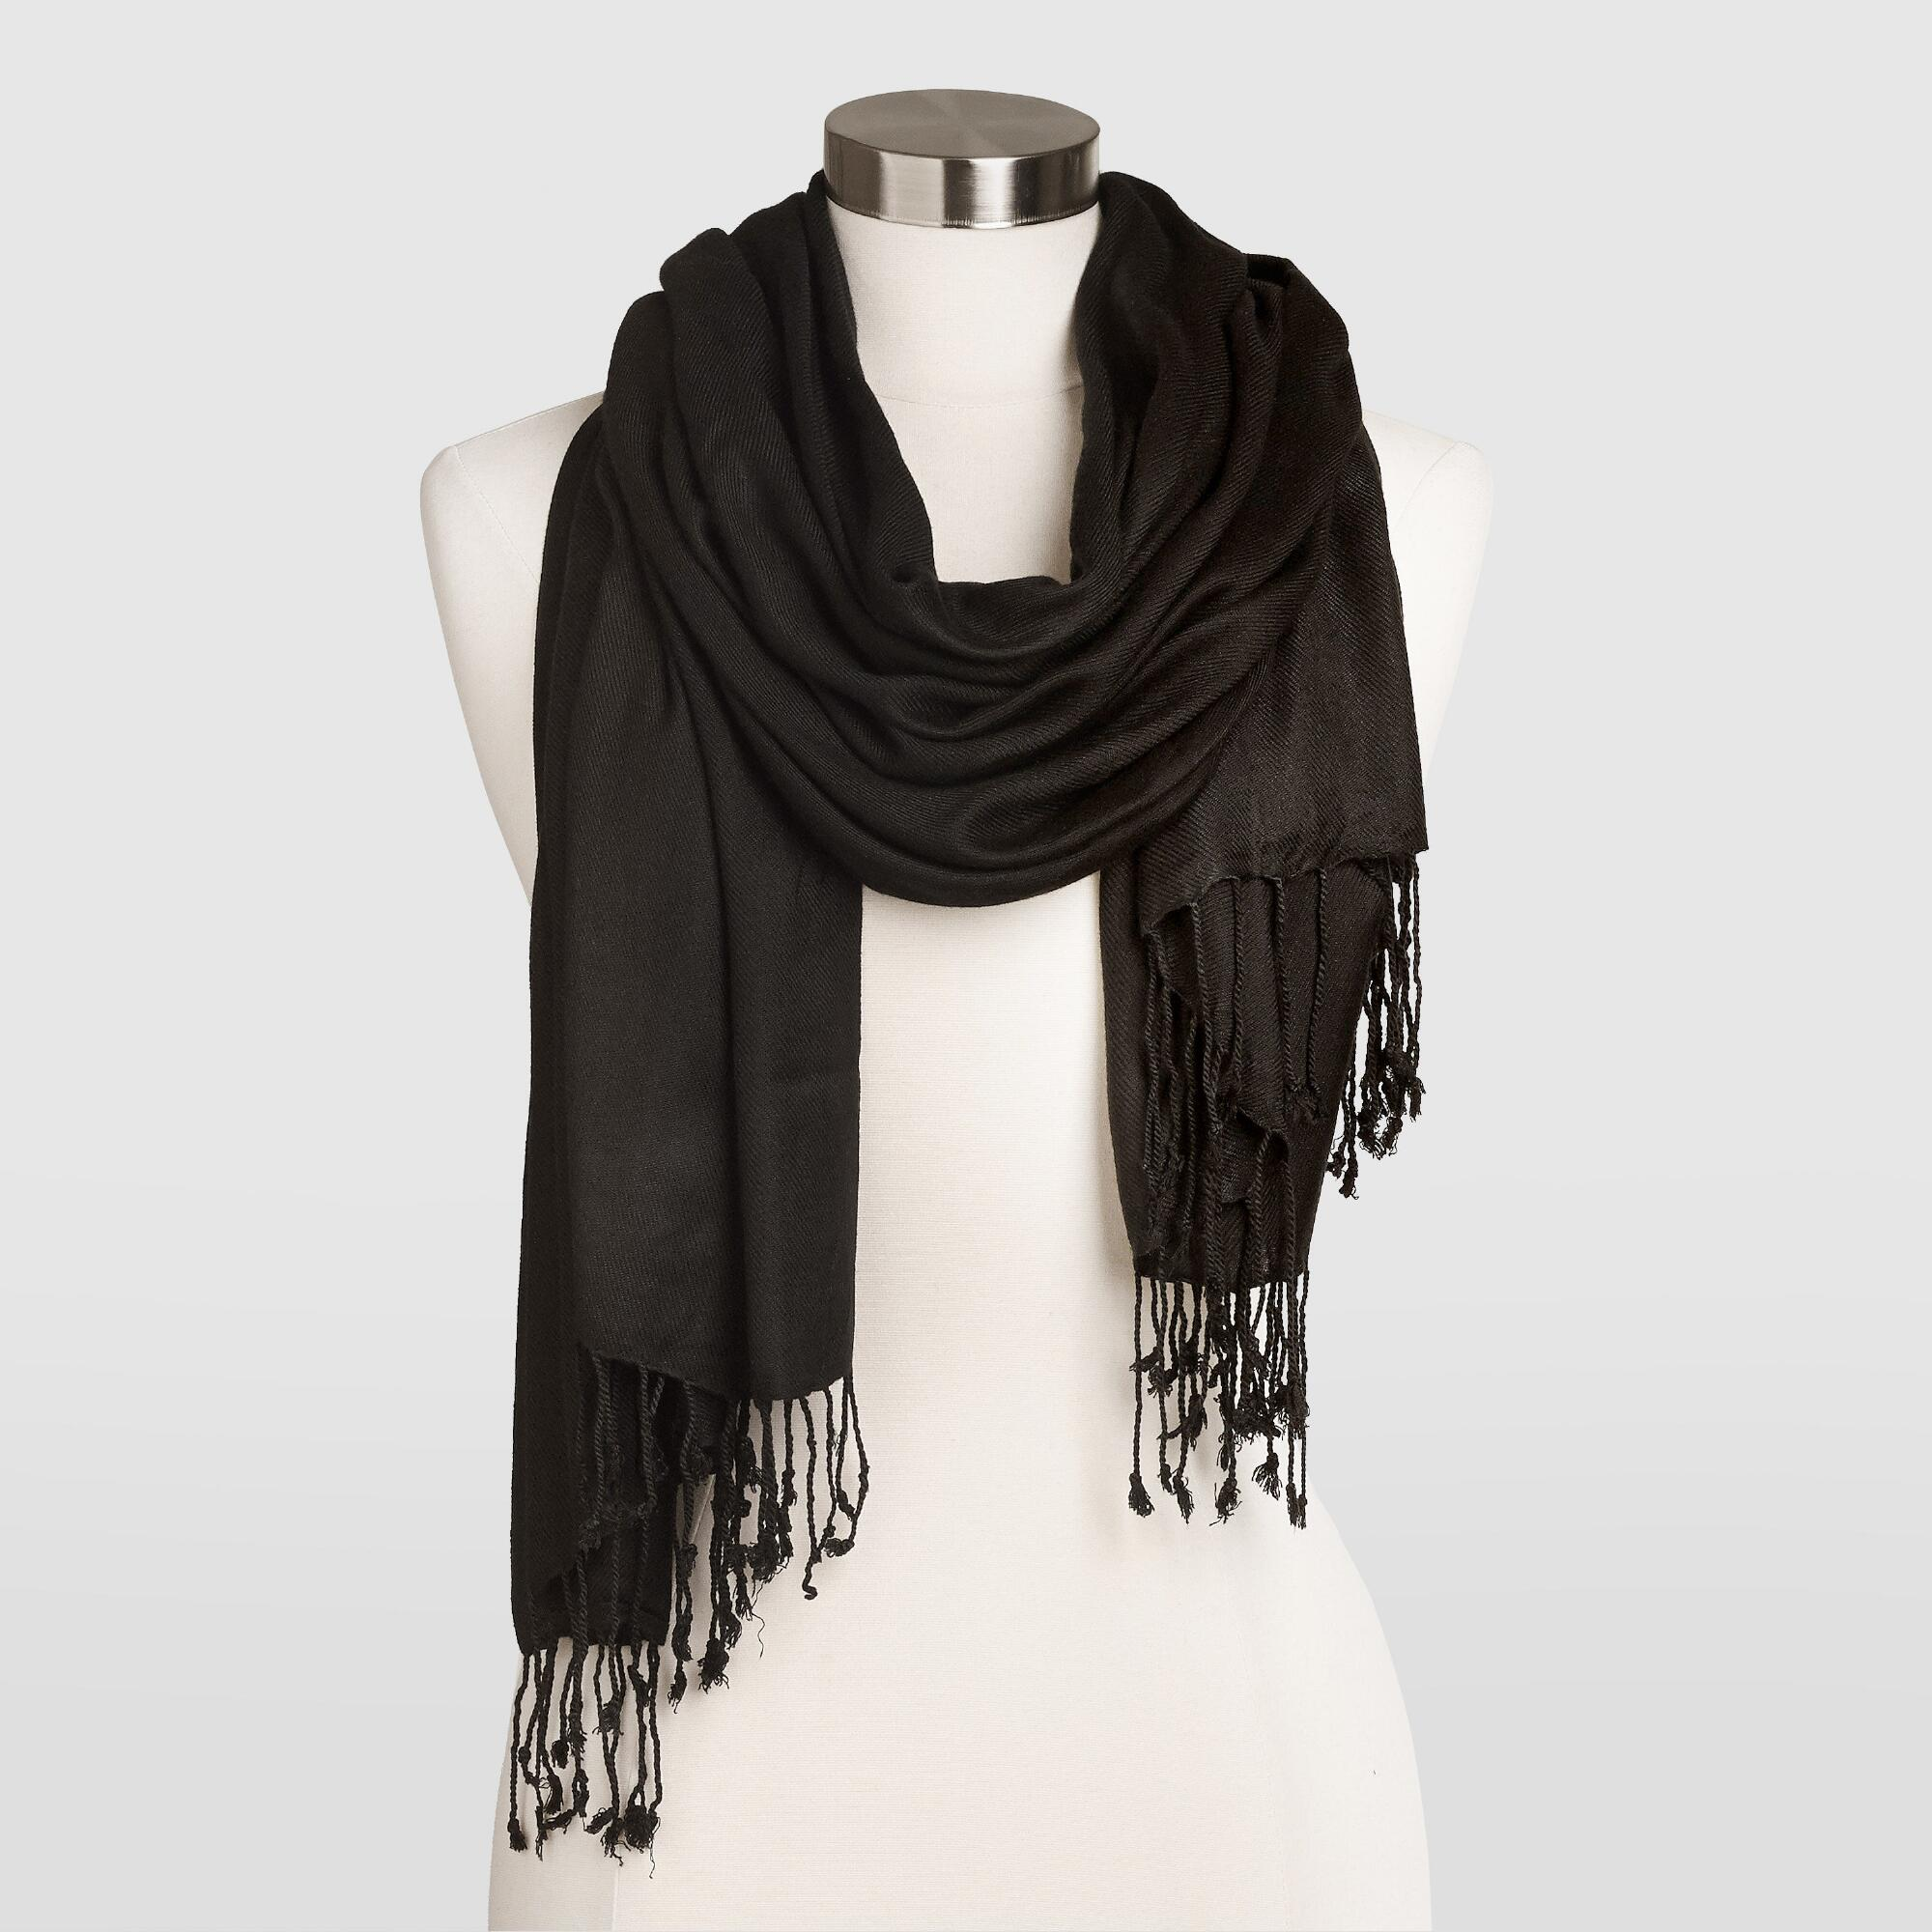 Unique Scarves, Wraps and Shawls | World Market